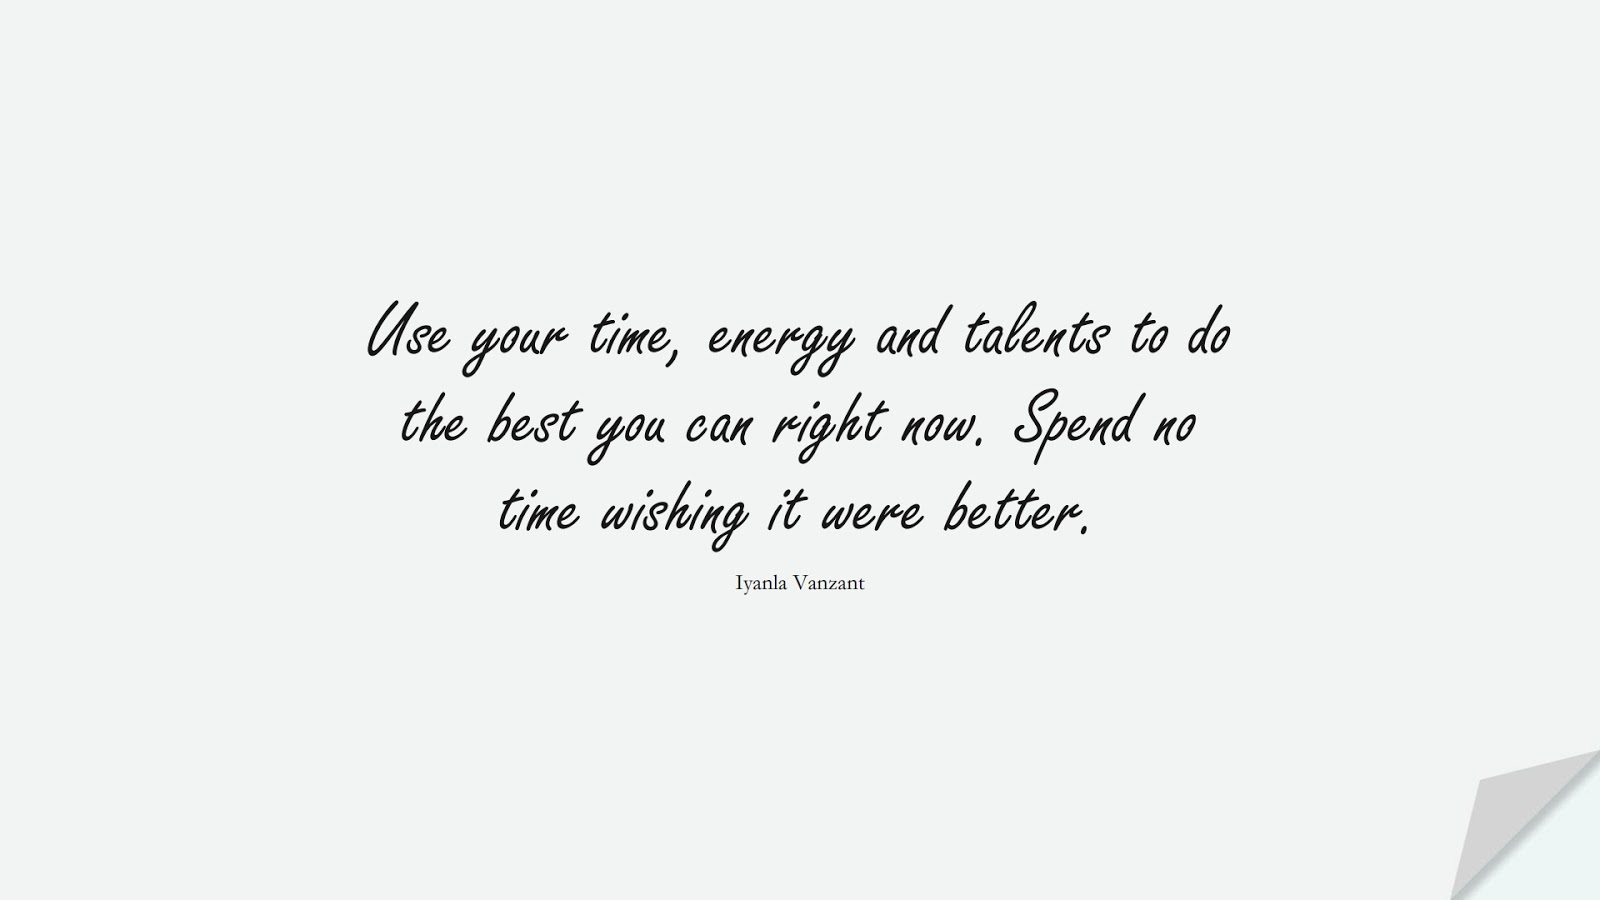 Use your time, energy and talents to do the best you can right now. Spend no time wishing it were better. (Iyanla Vanzant);  #AnxietyQuotes